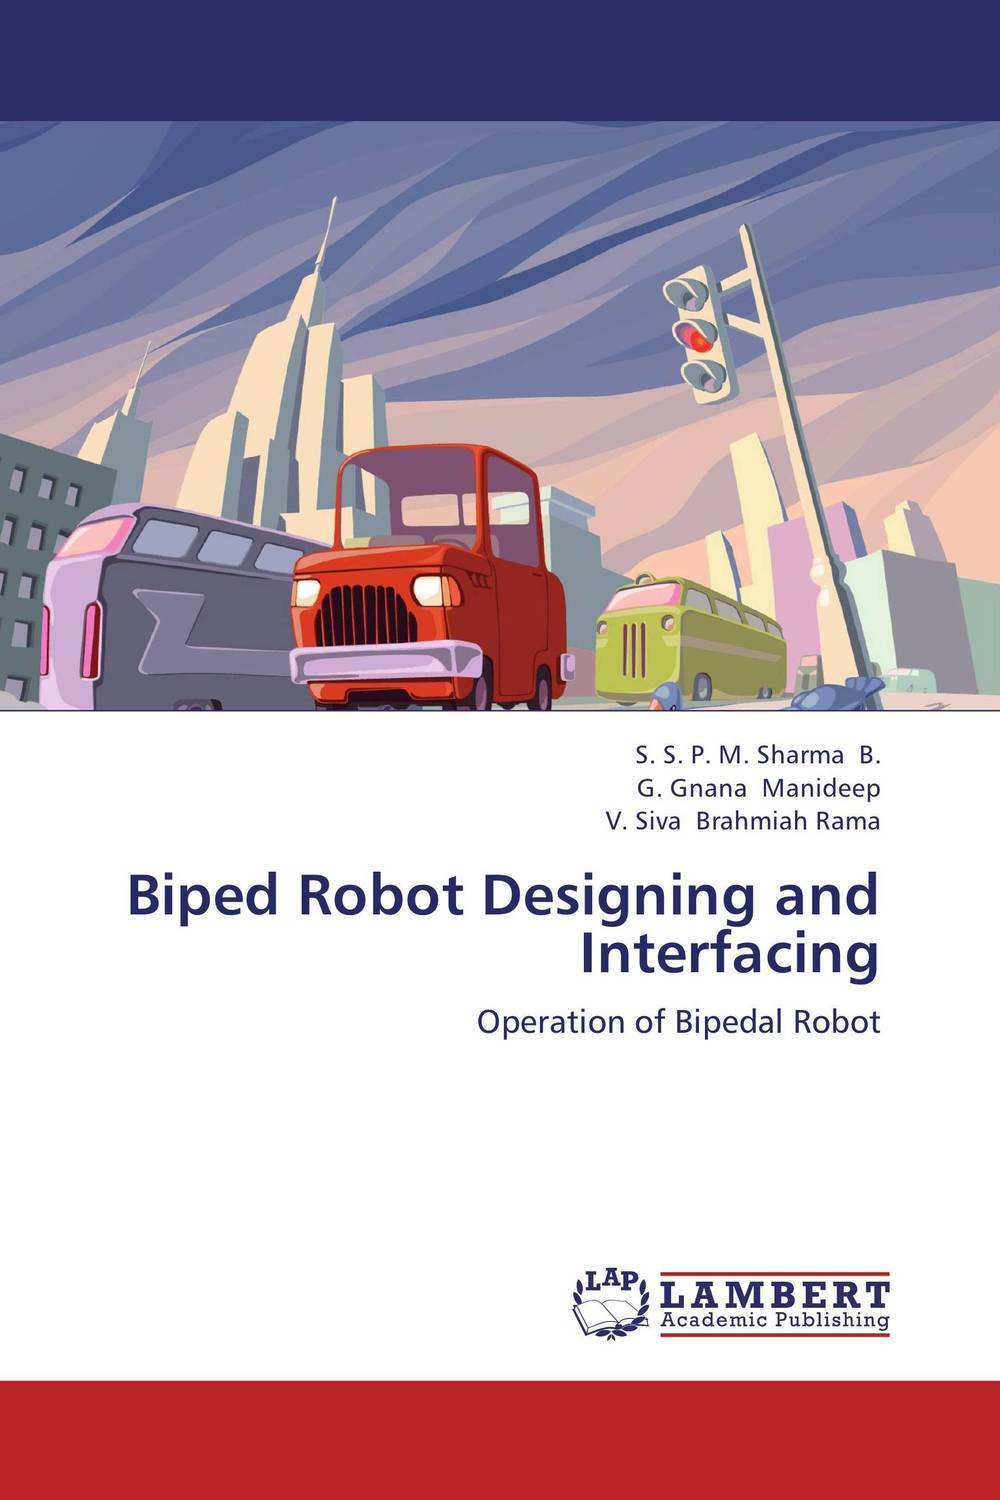 Biped Robot Designing and Interfacing new 17 degrees of freedom humanoid biped robot teaching and research biped robot platform model no electronic control system